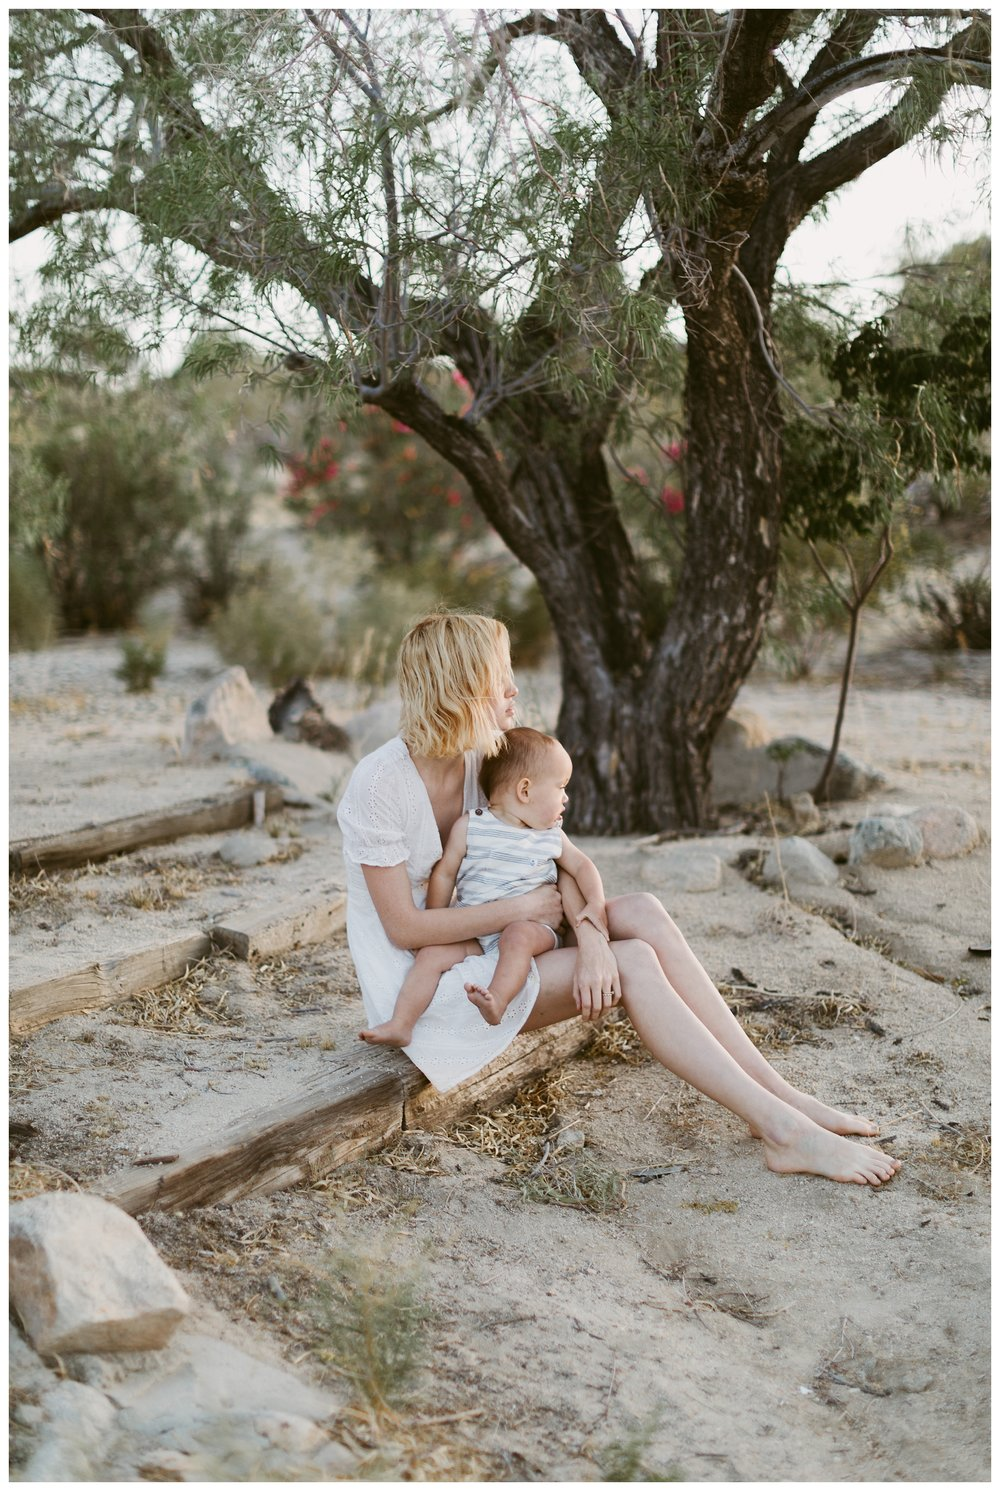 rhi-motherhood-joshua-tree (89 of 113).jpg